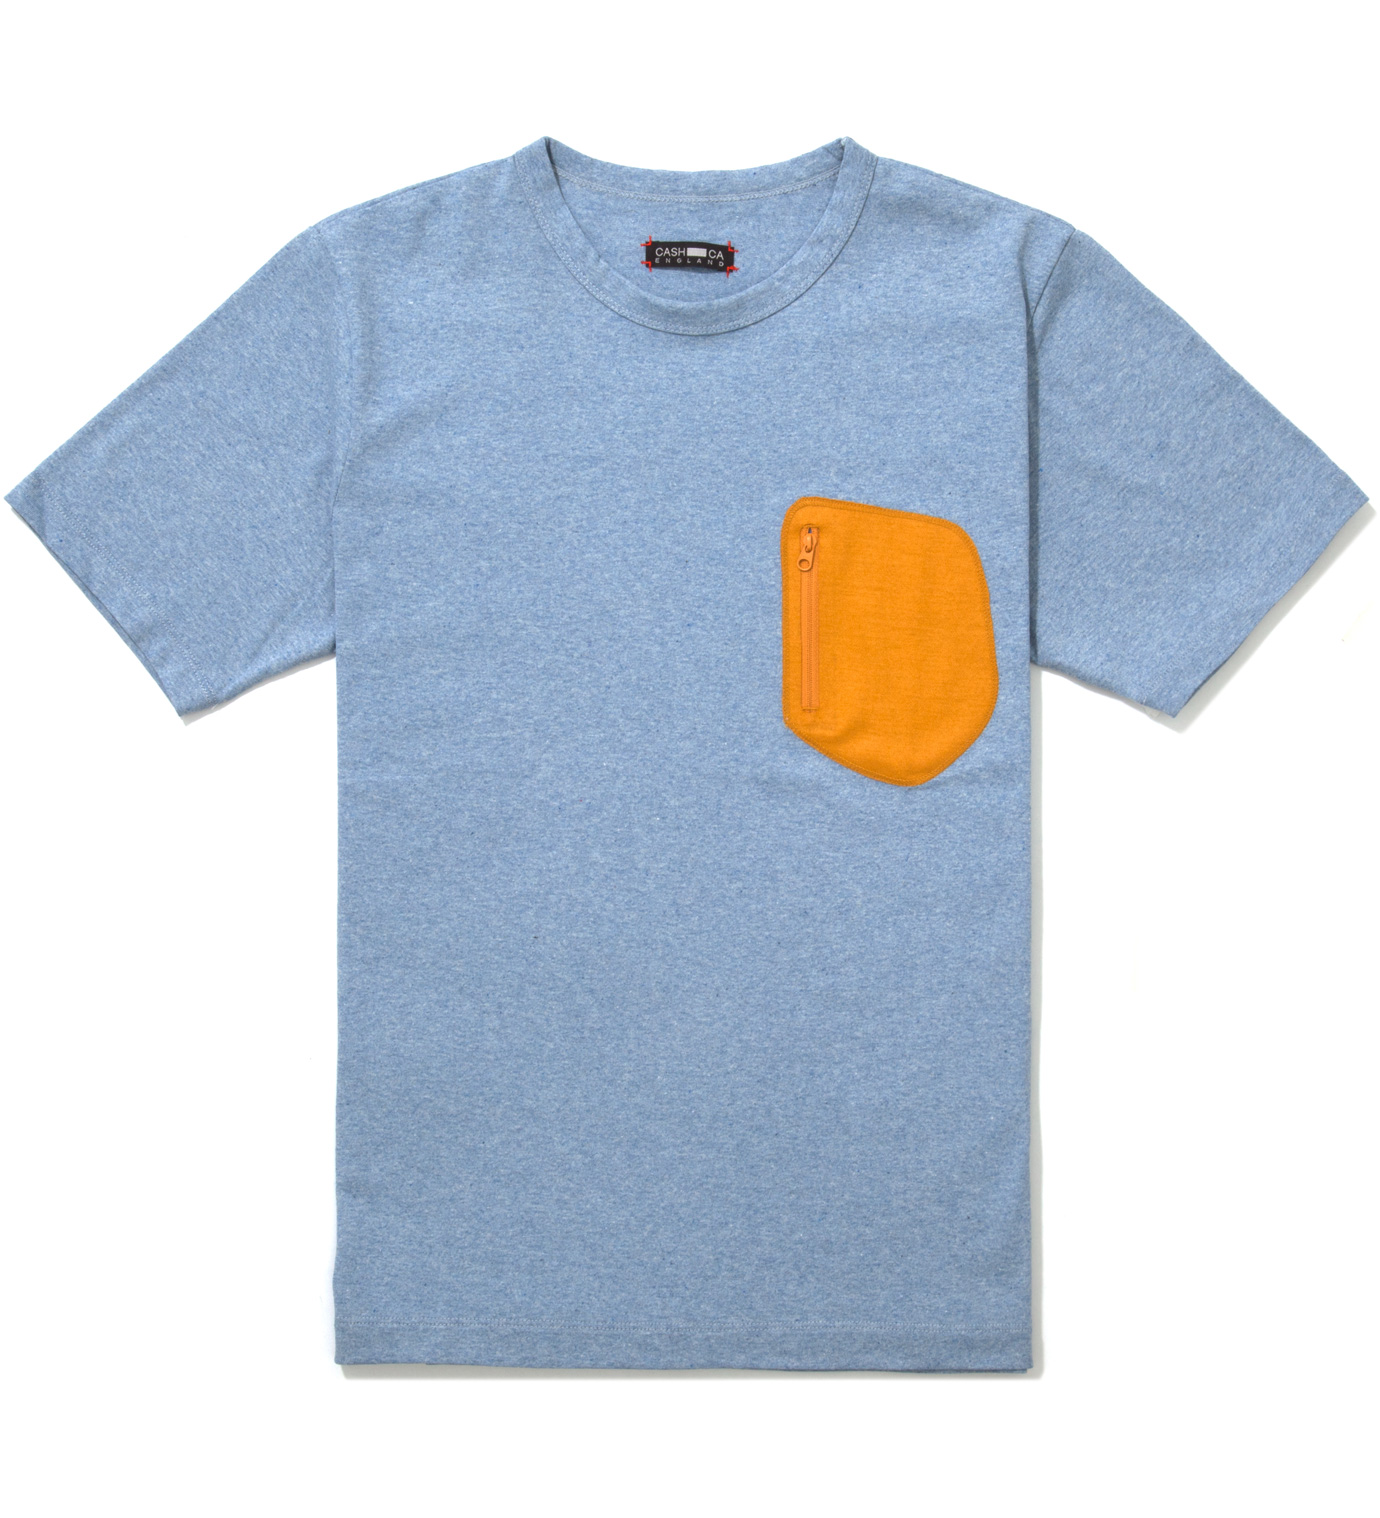 CASH CA Blue Wool Pocket T-Shirt